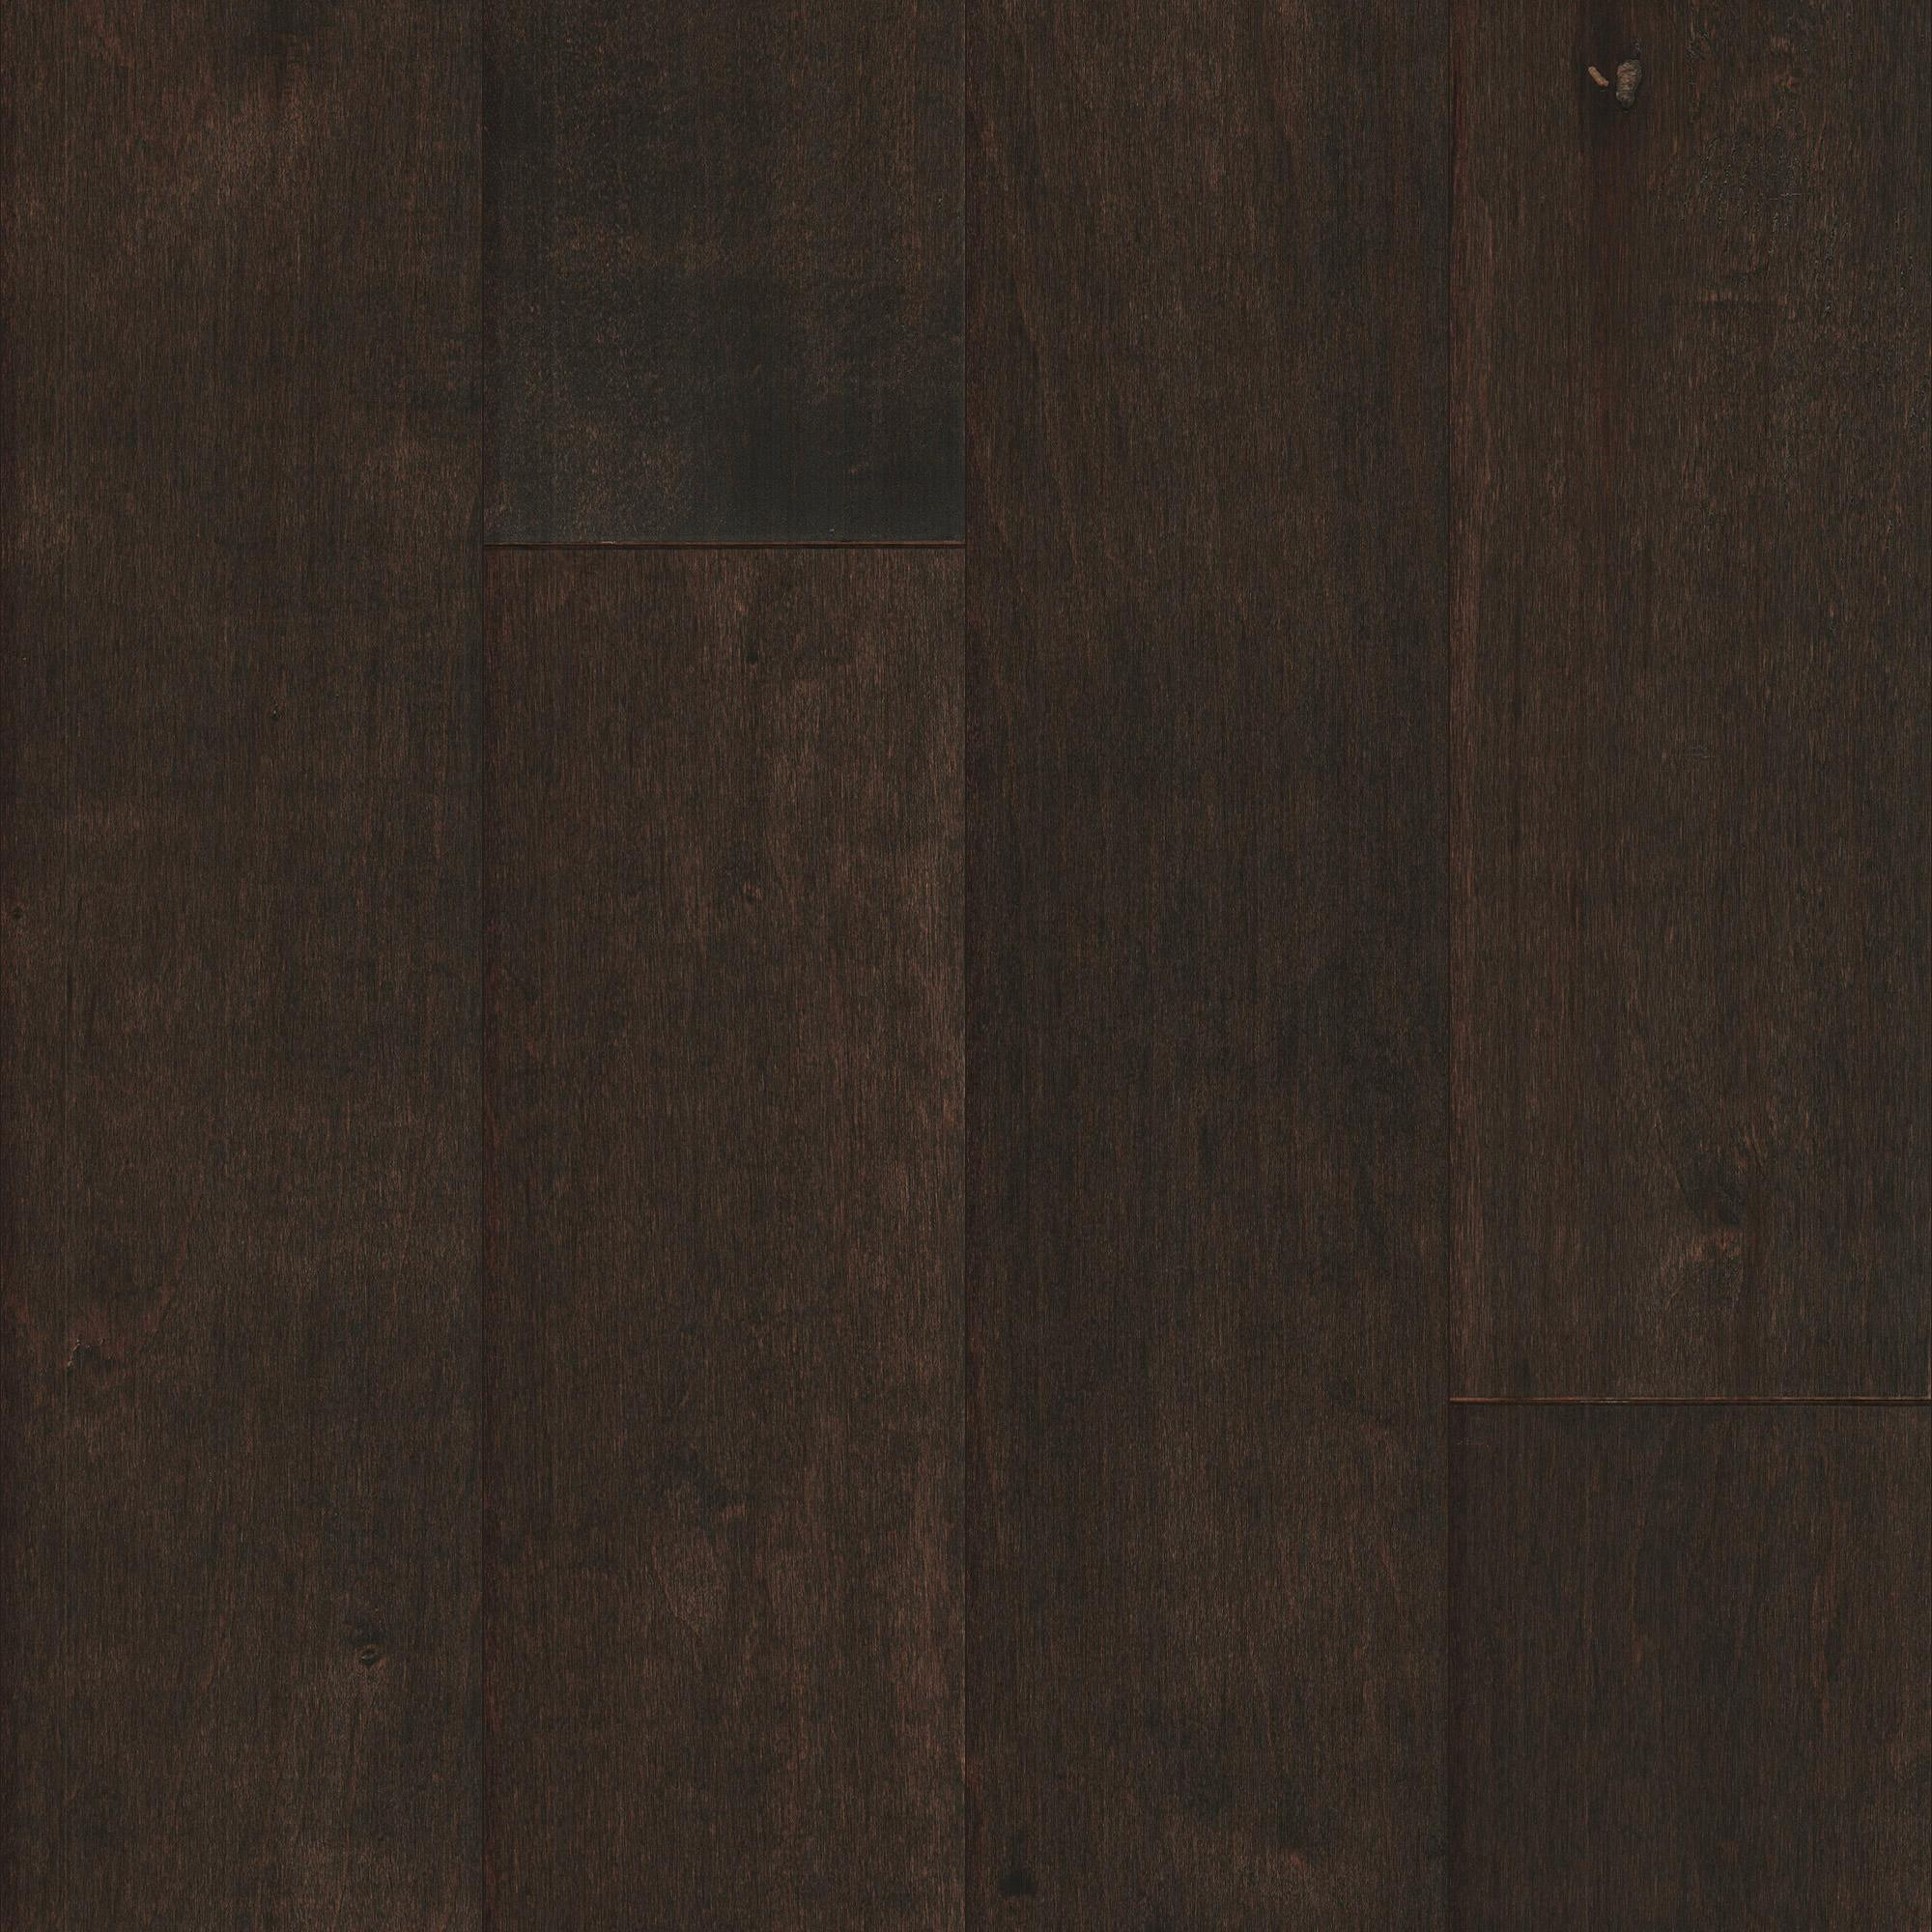 pet friendly engineered hardwood flooring of mullican ridgecrest maple cappuccino 1 2 thick 5 wide engineered for mullican ridgecrest maple cappuccino 1 2 thick 5 wide engineered hardwood flooring